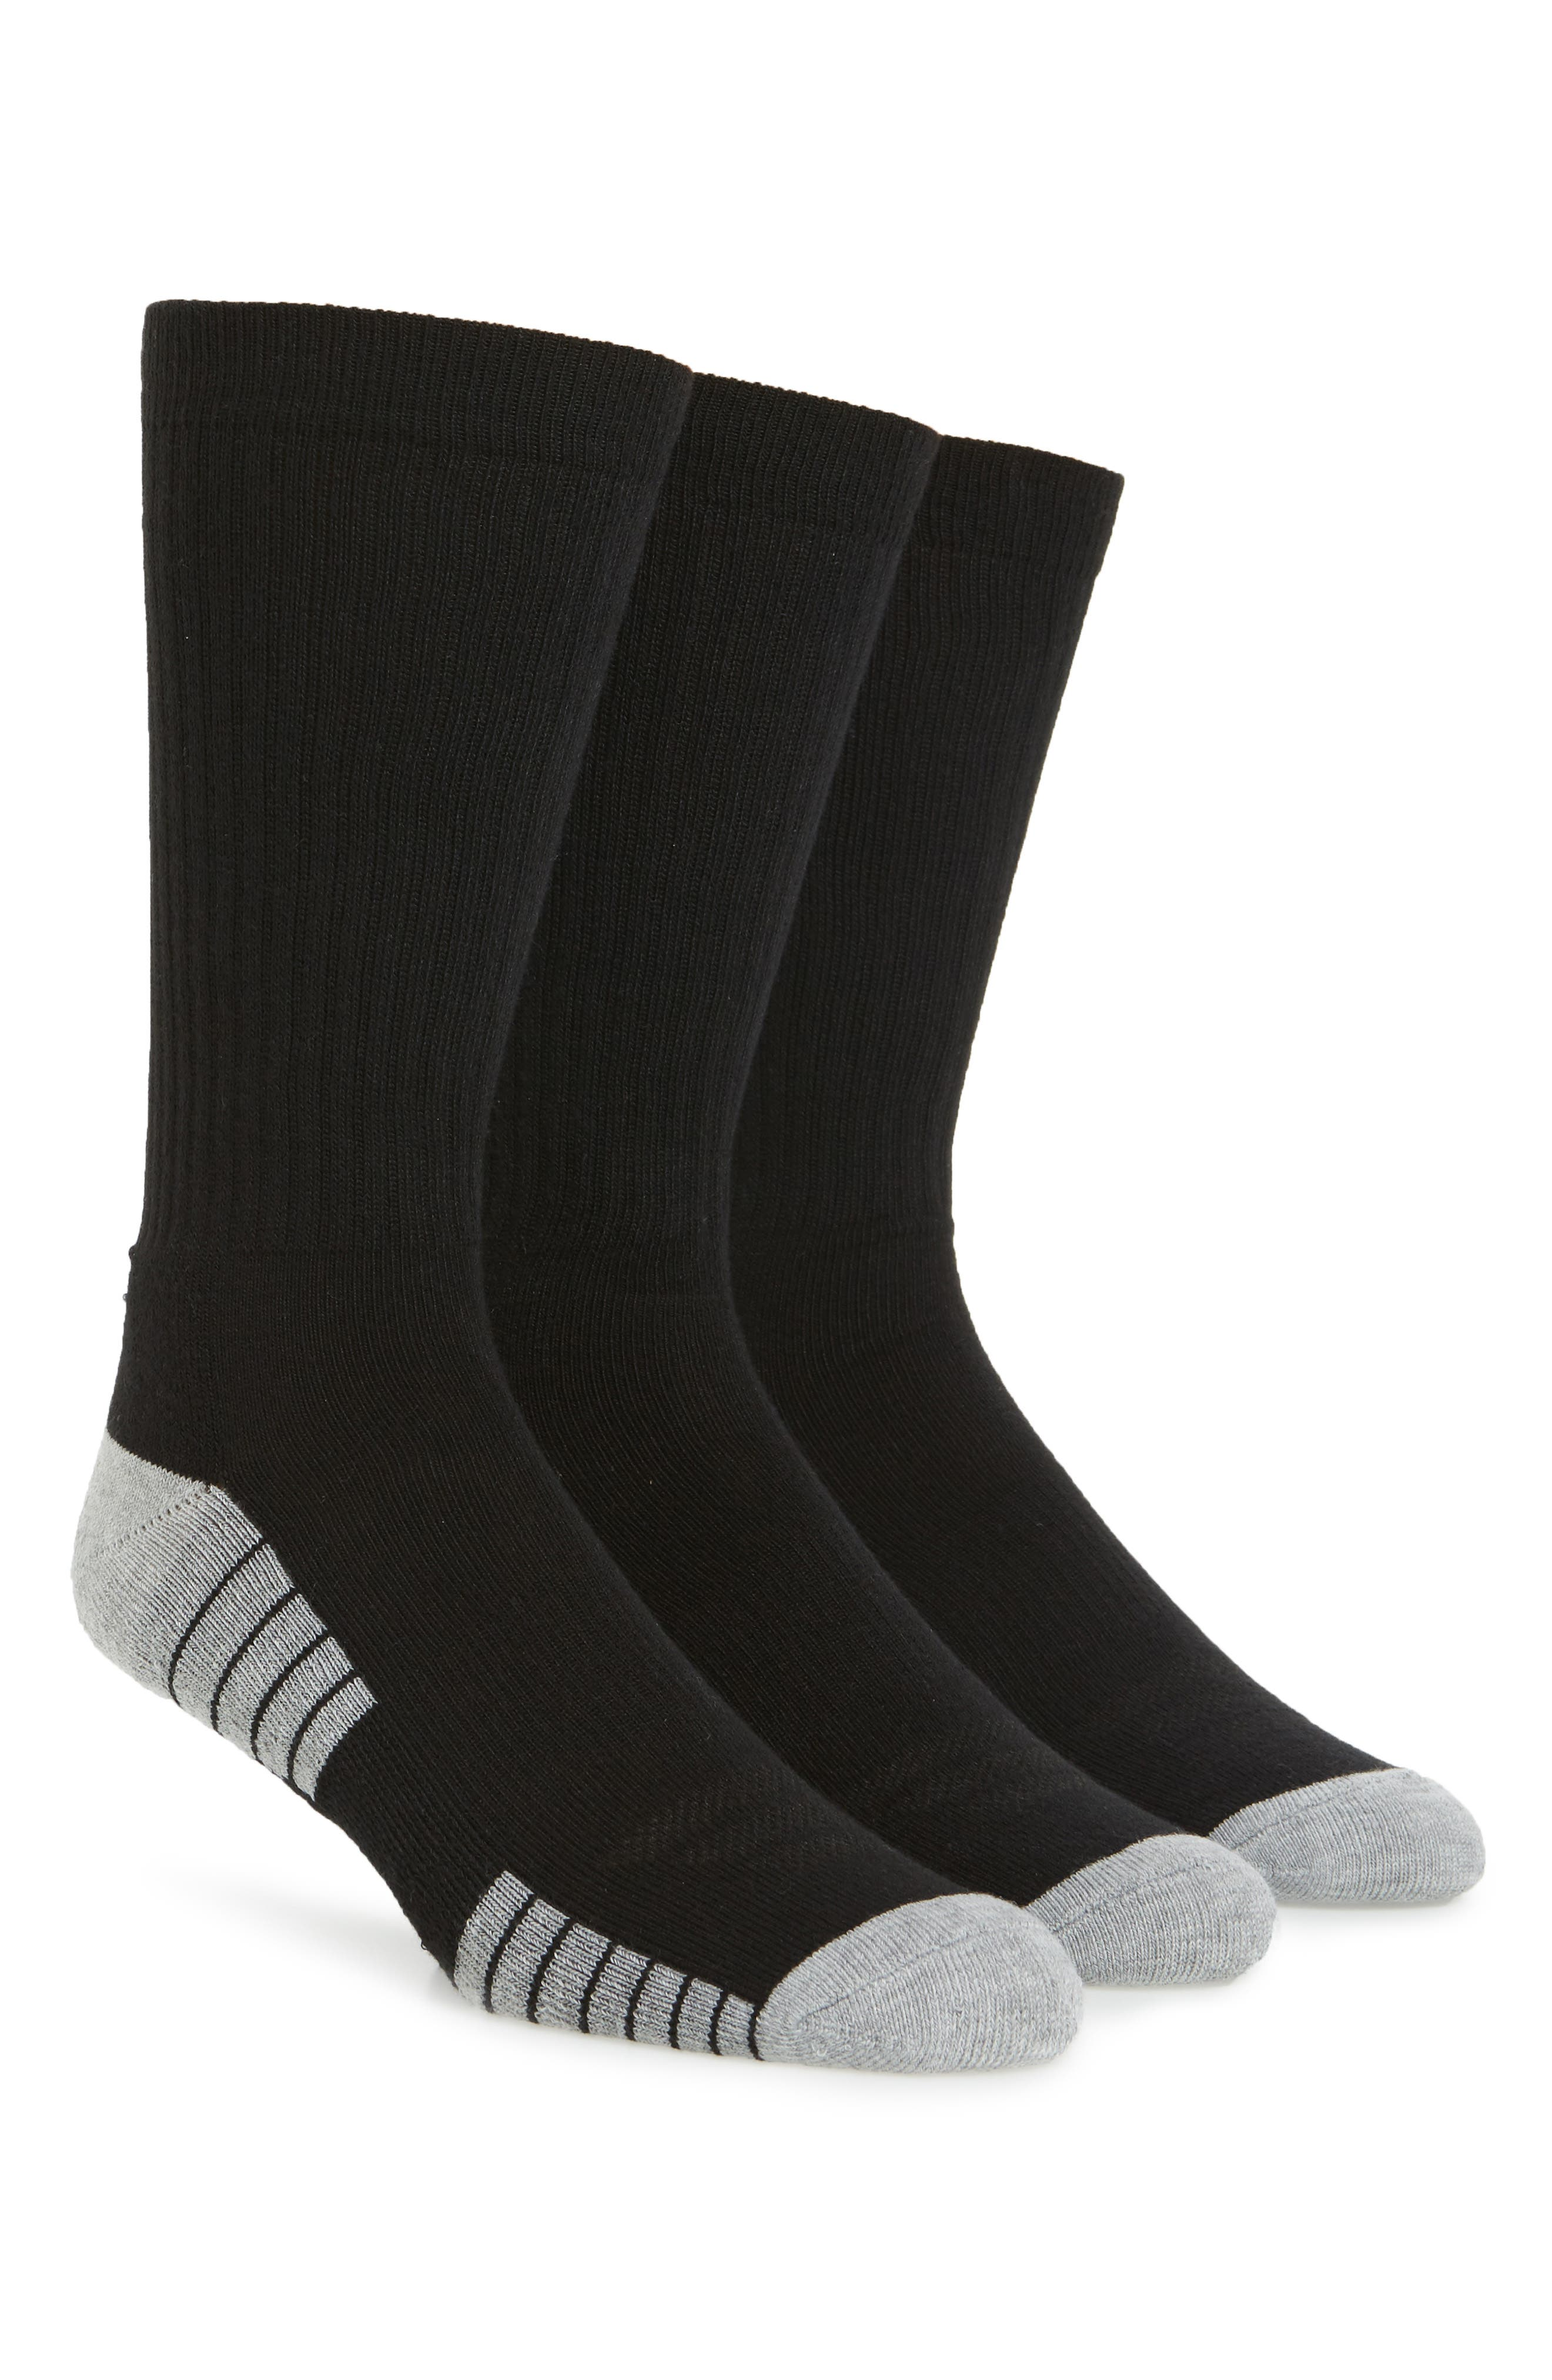 Under Armour HeatGear 3-Pack Crew Socks